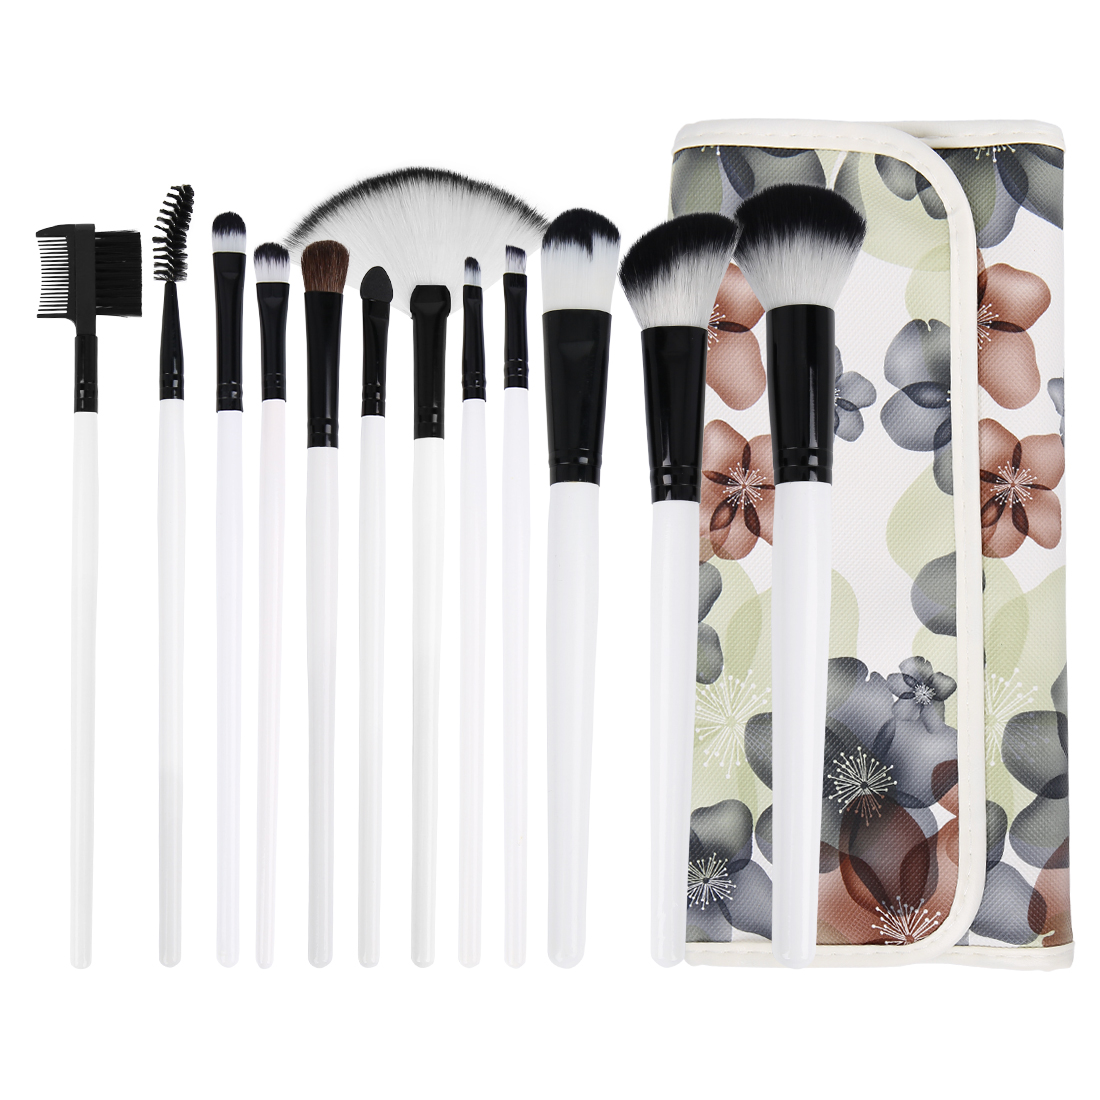 12 Pcs Pro Beauty Tool Powder Eyeliner Makeup Brushes w Flower Pattern Bag